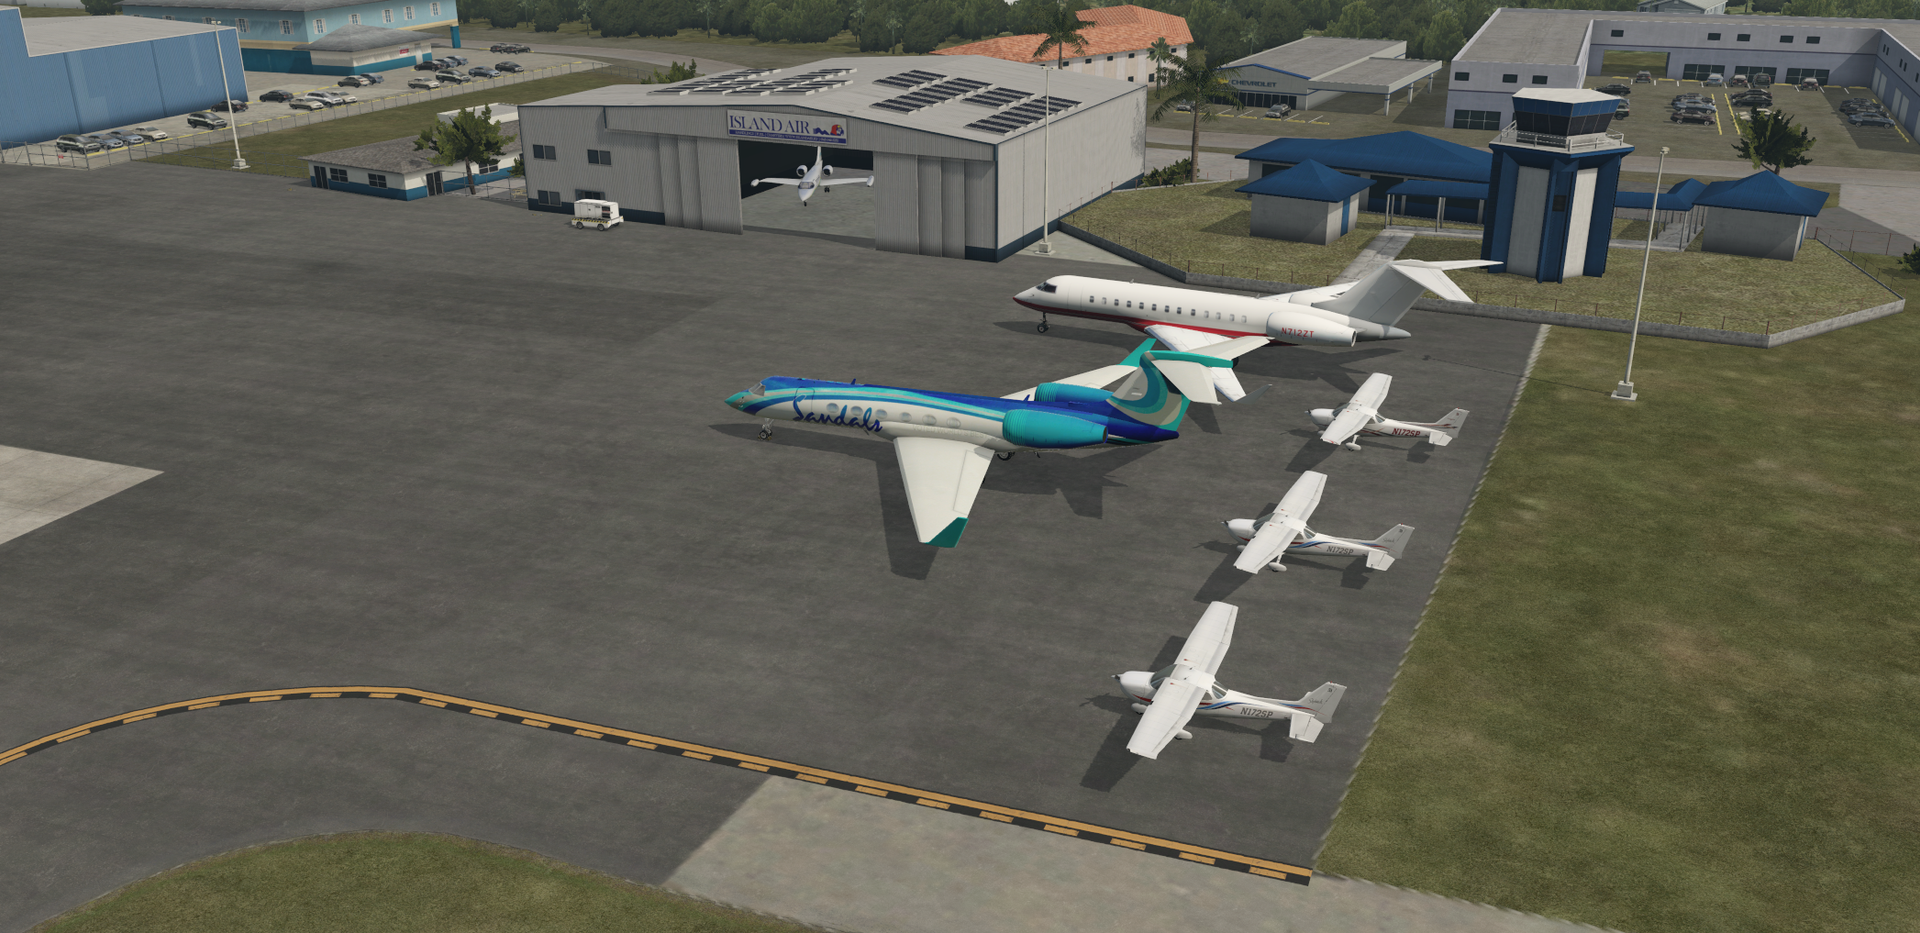 b738_64.png